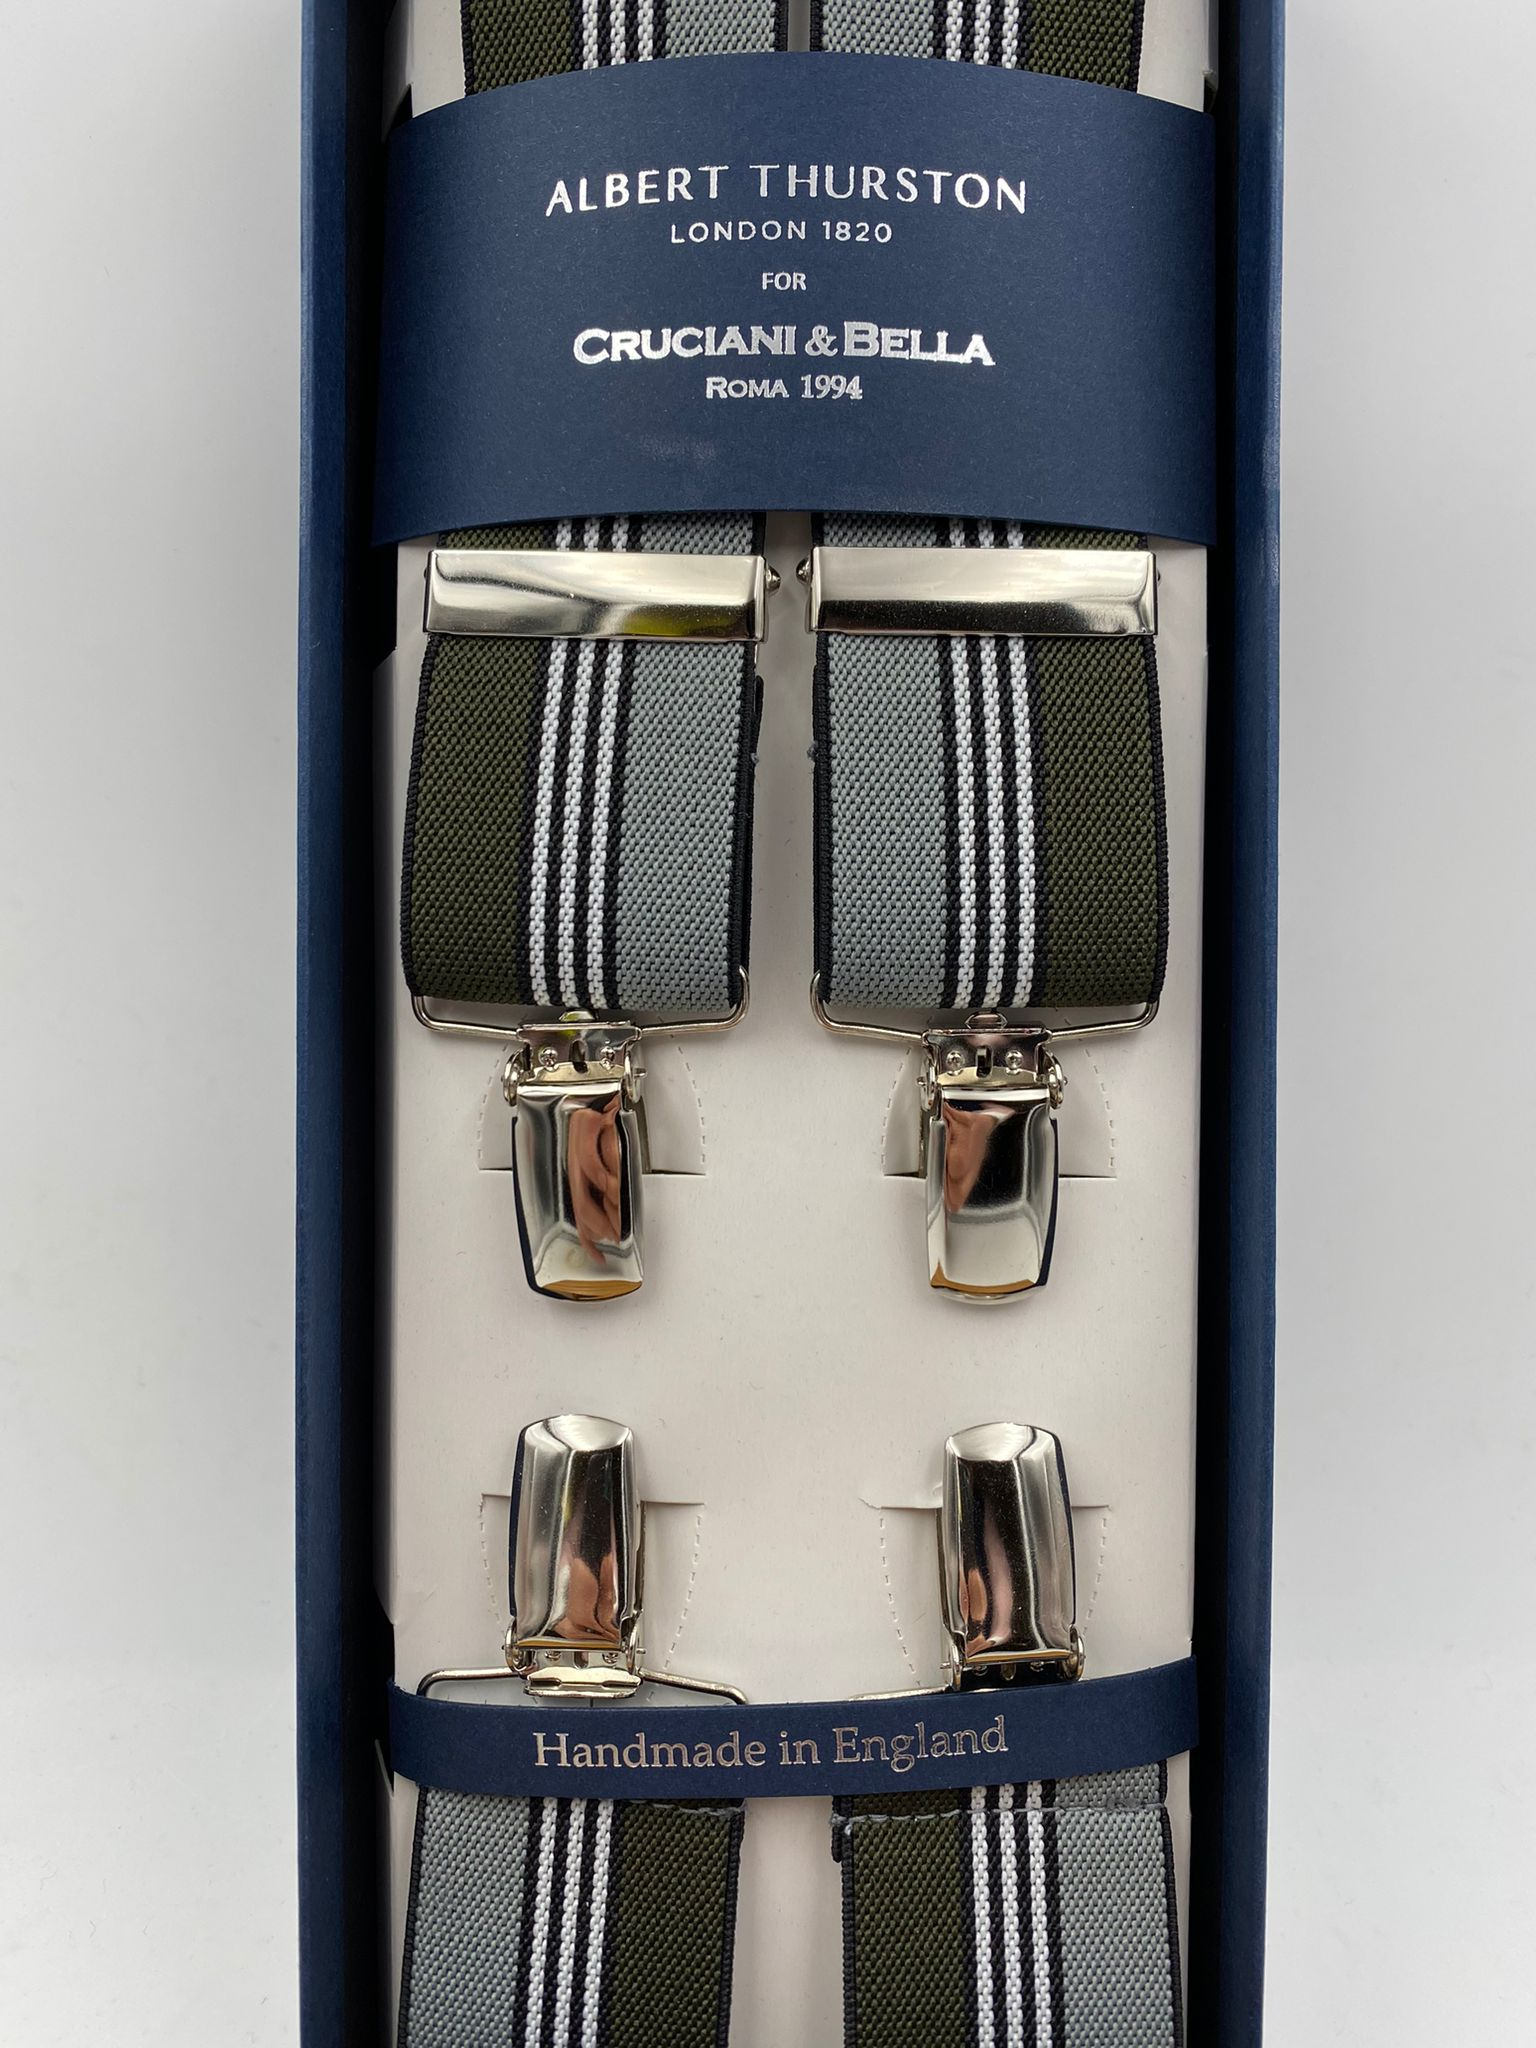 Albert Thurston for Cruciani & Bella Made in England Clip on Adjustable Sizing 35 mm elastic braces Green, Grey and White Stripe X-Shaped Nickel Fittings Size: L #4807